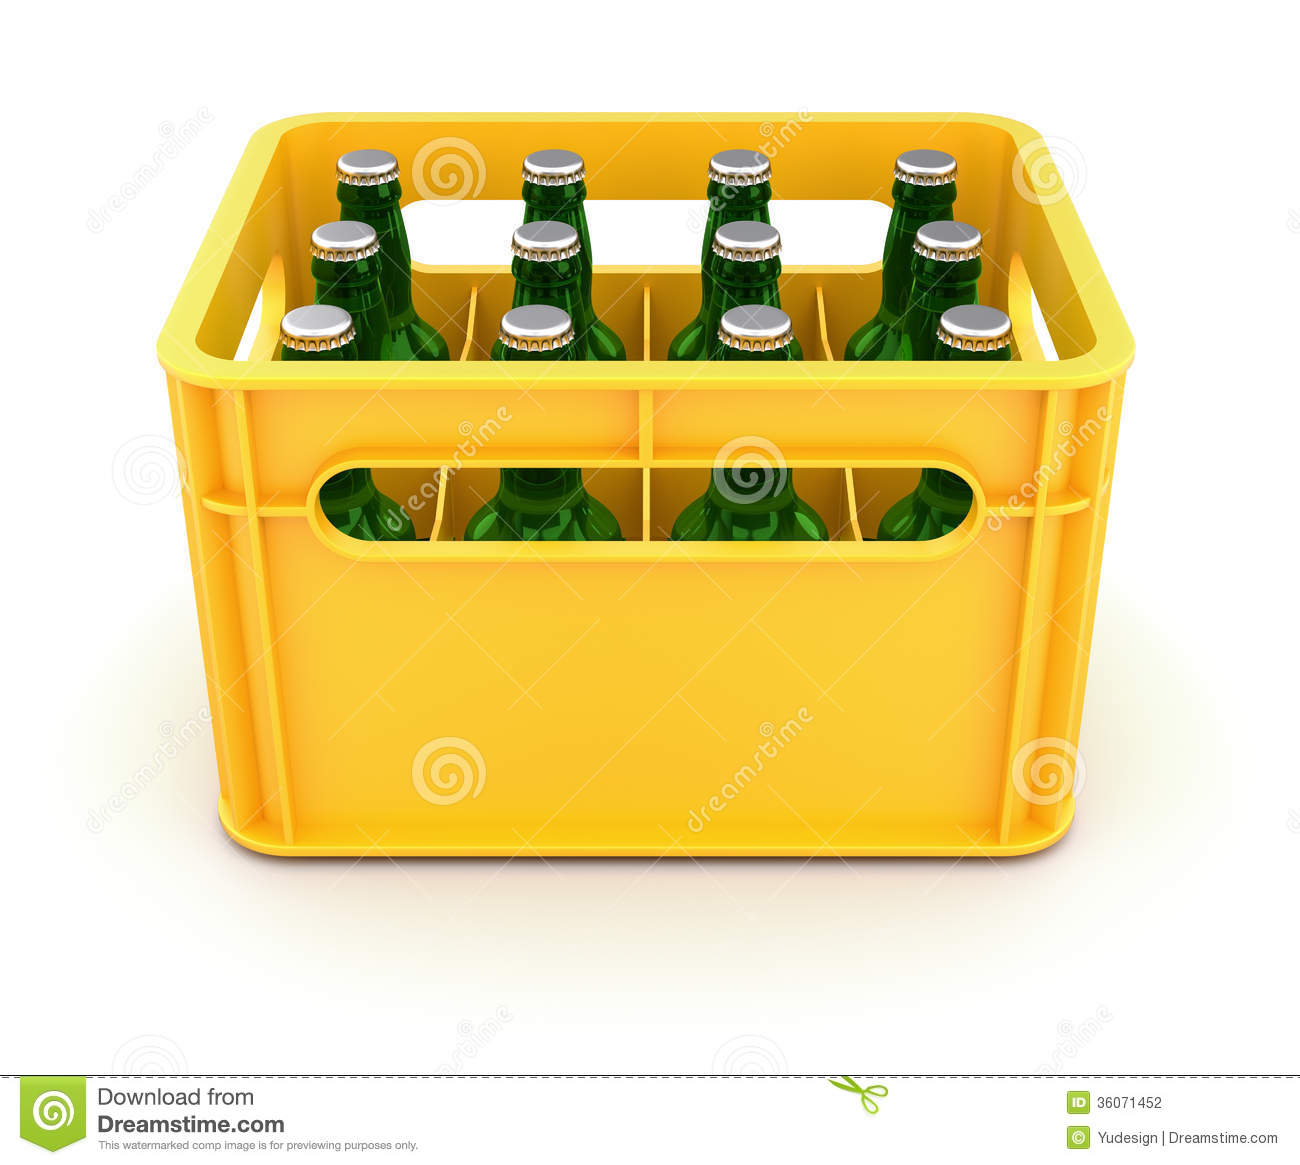 Drink Crate With Beer Bottles Stock Photography - Image: 36071452